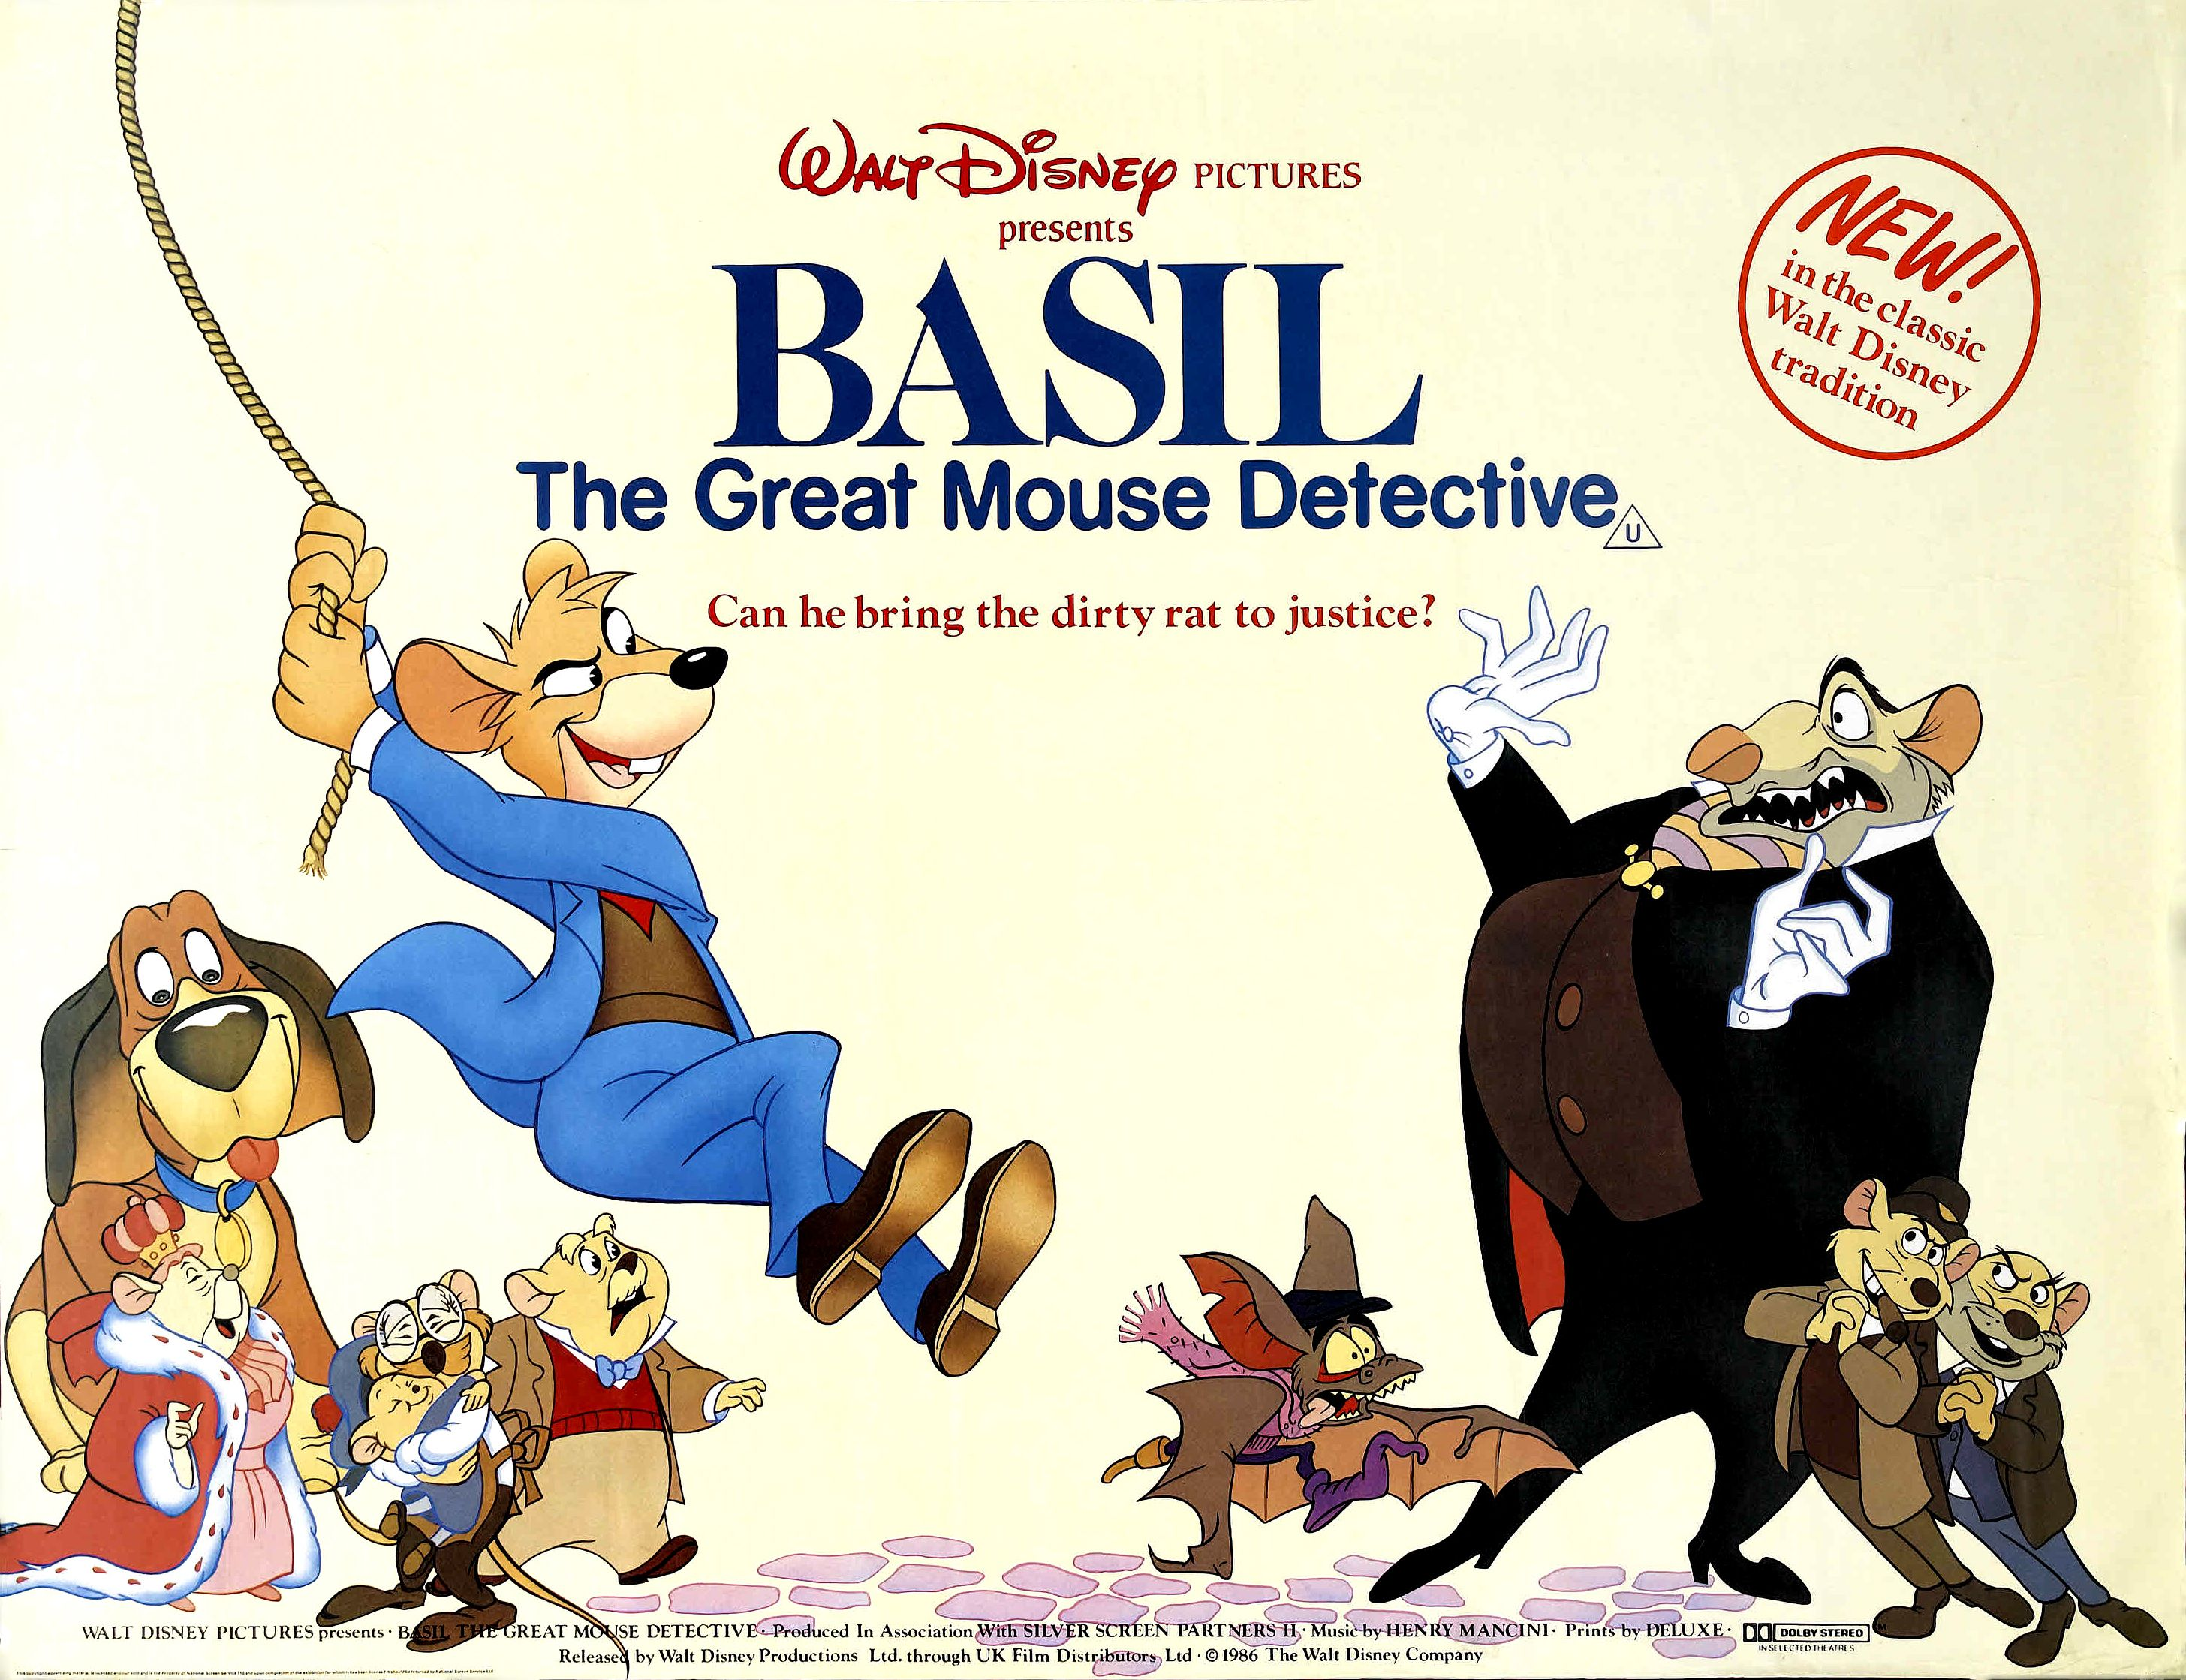 The Great Mouse Detective (1986) under its British title. The ...